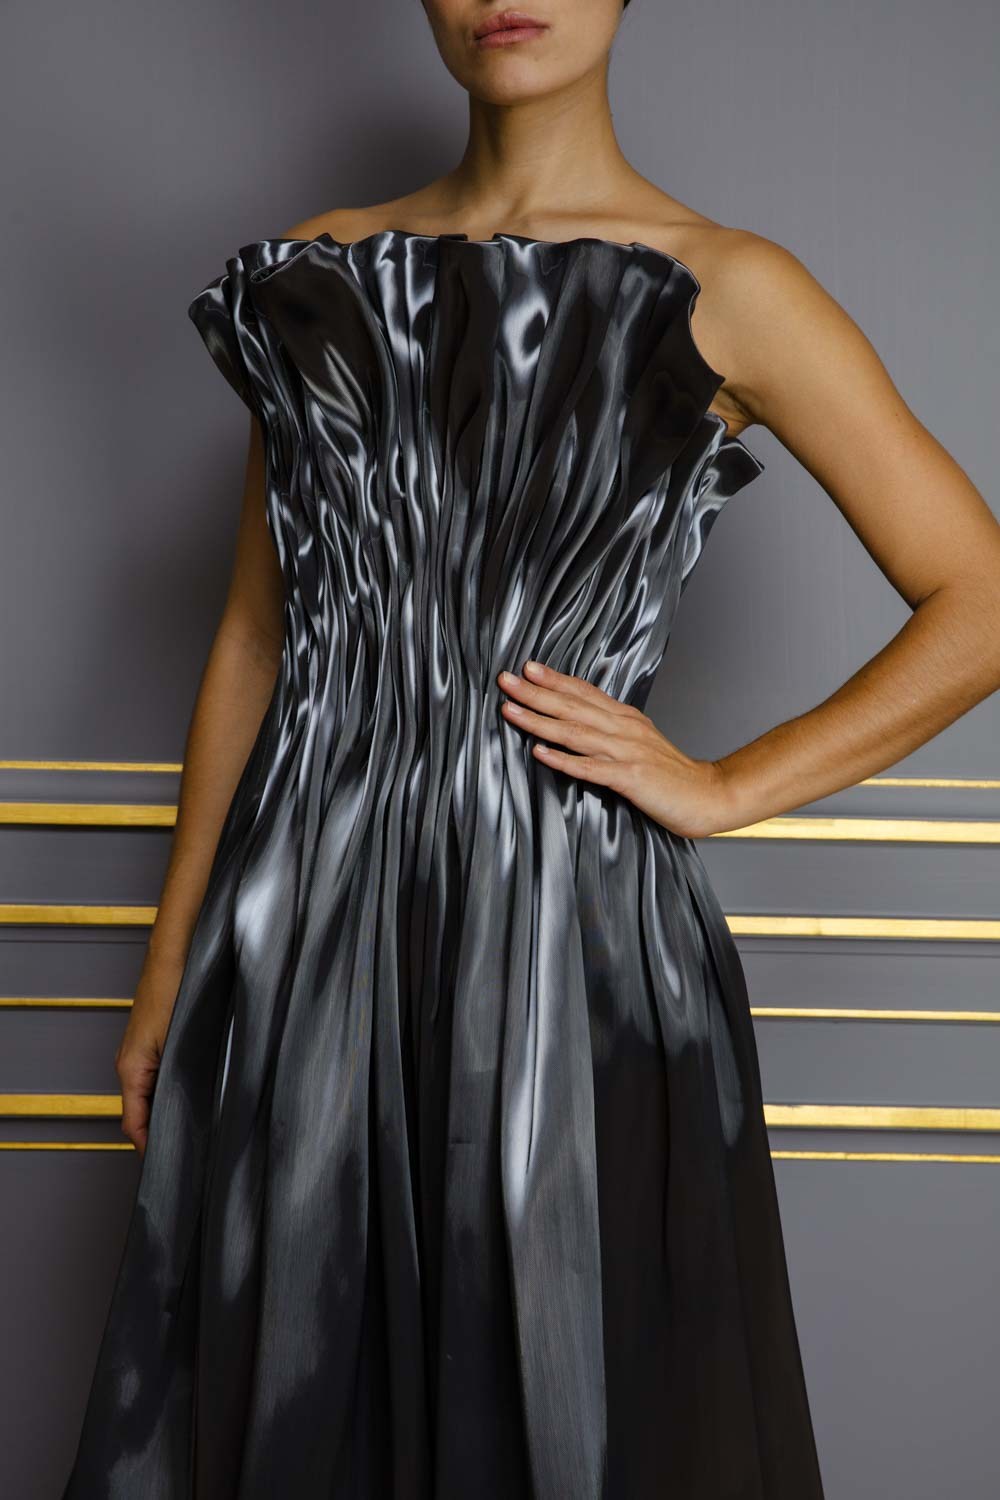 Free-flowing liquid gown in anthracite grey